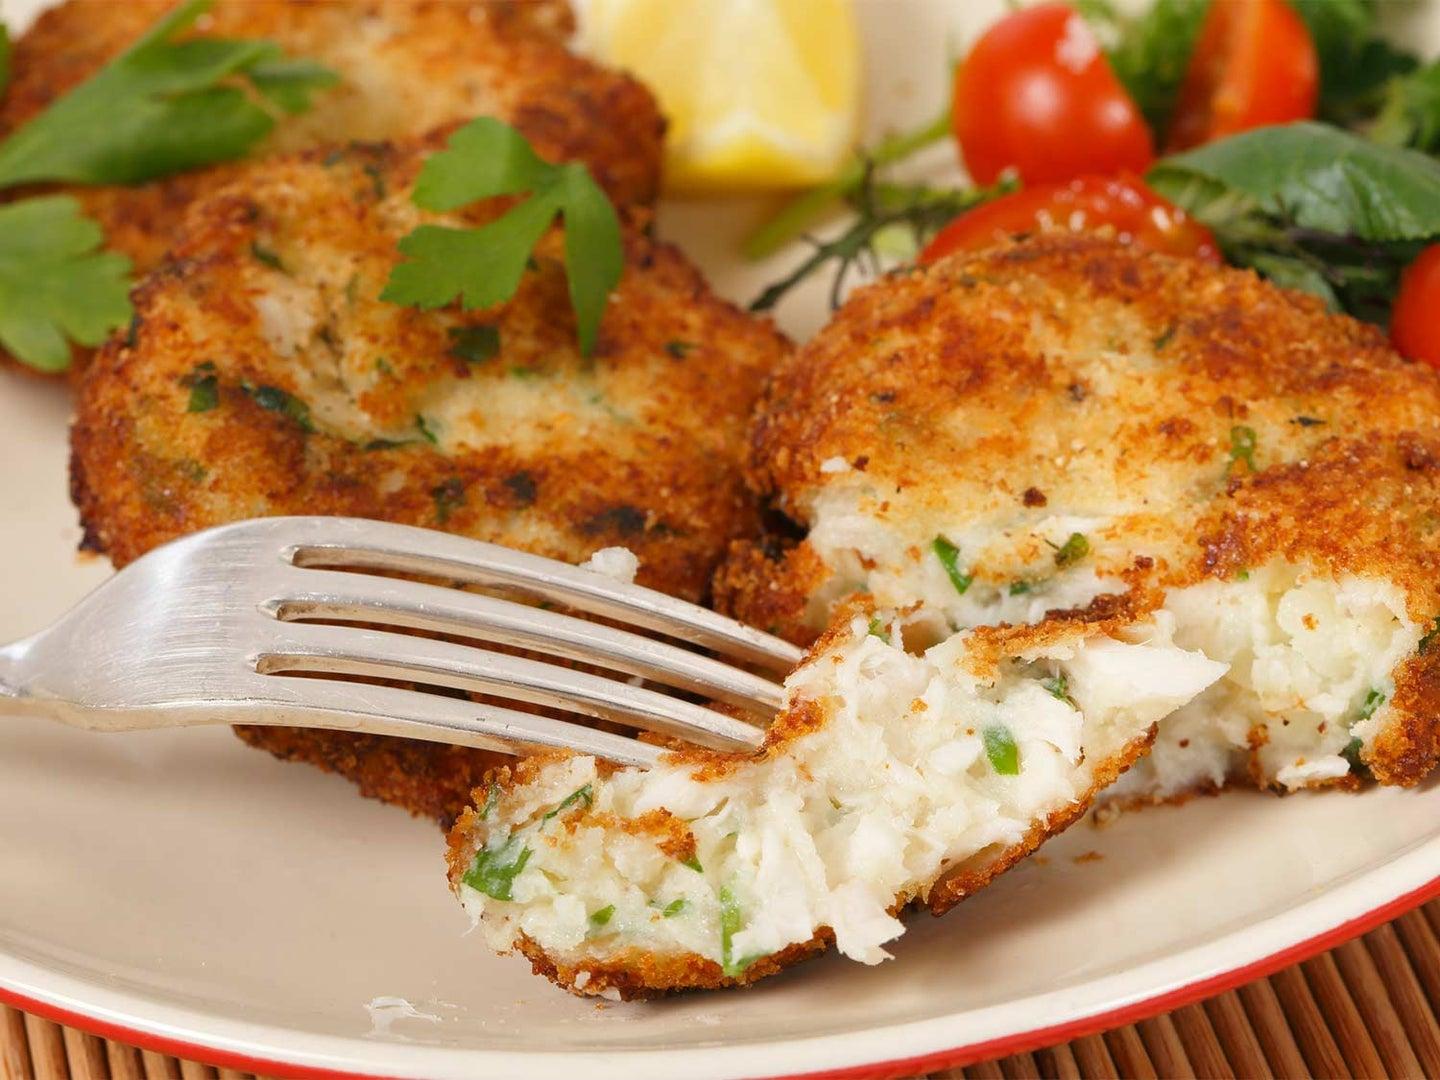 A fork cuts into a fish cake.